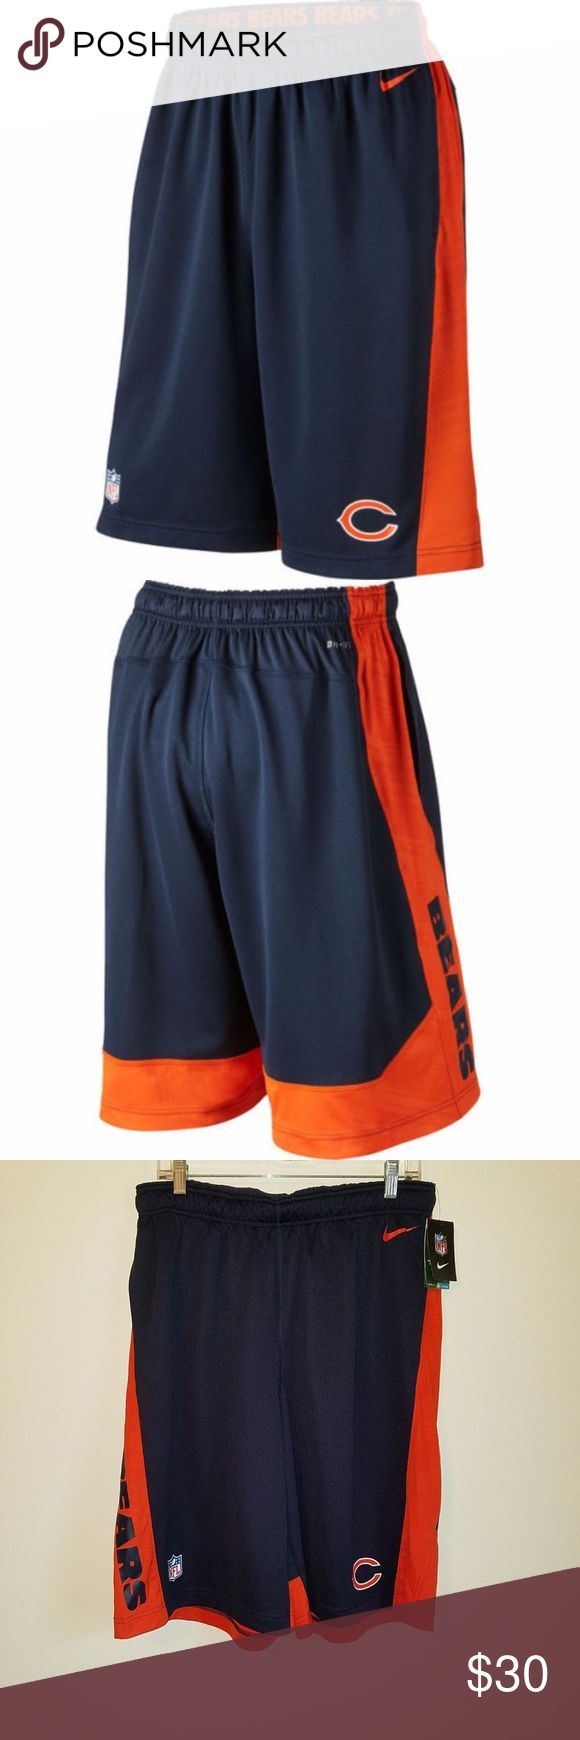 "Chicago Bears Nike Dri Fit Shorts Large THIS IS A BRAND NEW PAIR WITH TAGS AND GUARANTEED AUTHENTIC MEN'S SIZE LARGE NIKE CHICAGO BEARS FLY 2.0 DRI-FIT TRAINING SHORTS. THESE SHORTS ARE BLUE AND ORANGE IN COLOR AND RETAIL FOR $50 PLUS TAX.  597259-459  Thanks for looking! Message me with any questions!  FEATURES:  FABRIC: Dri-FIT 100% polyester FIT: Athletic, 12"" inseam CARE: Machine wash IMPORTED Nike Shorts Athletic"